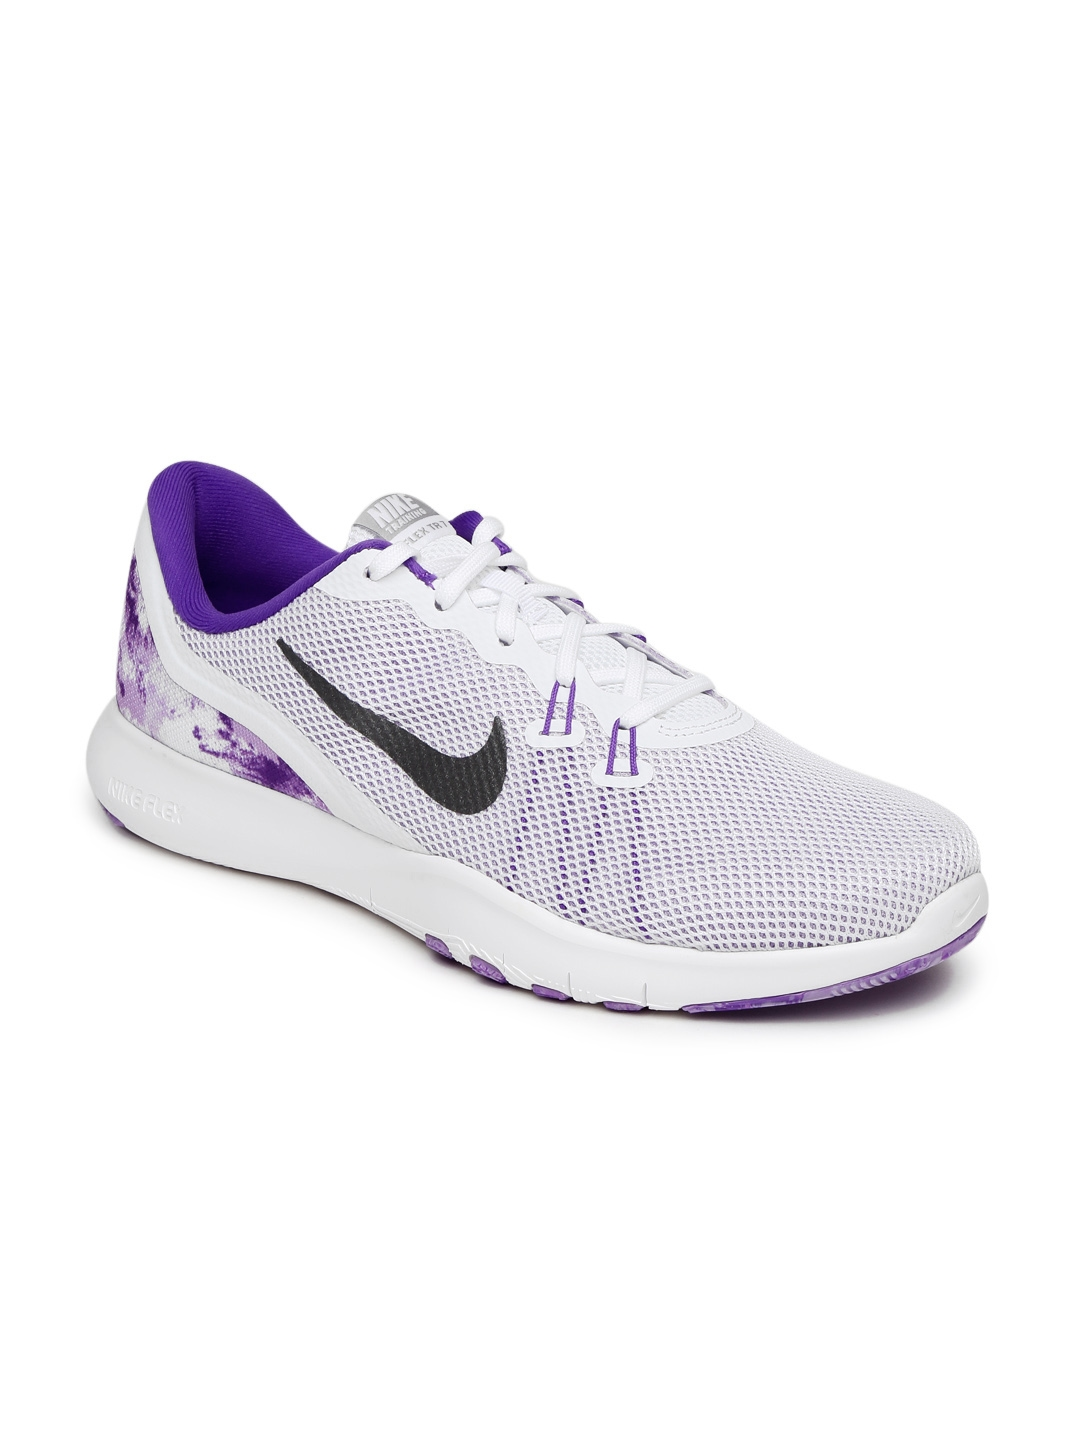 c34faac6b450 Buy Nike Women Purple   White FLEX TRAINER 7 Sports Shoes - Sports ...